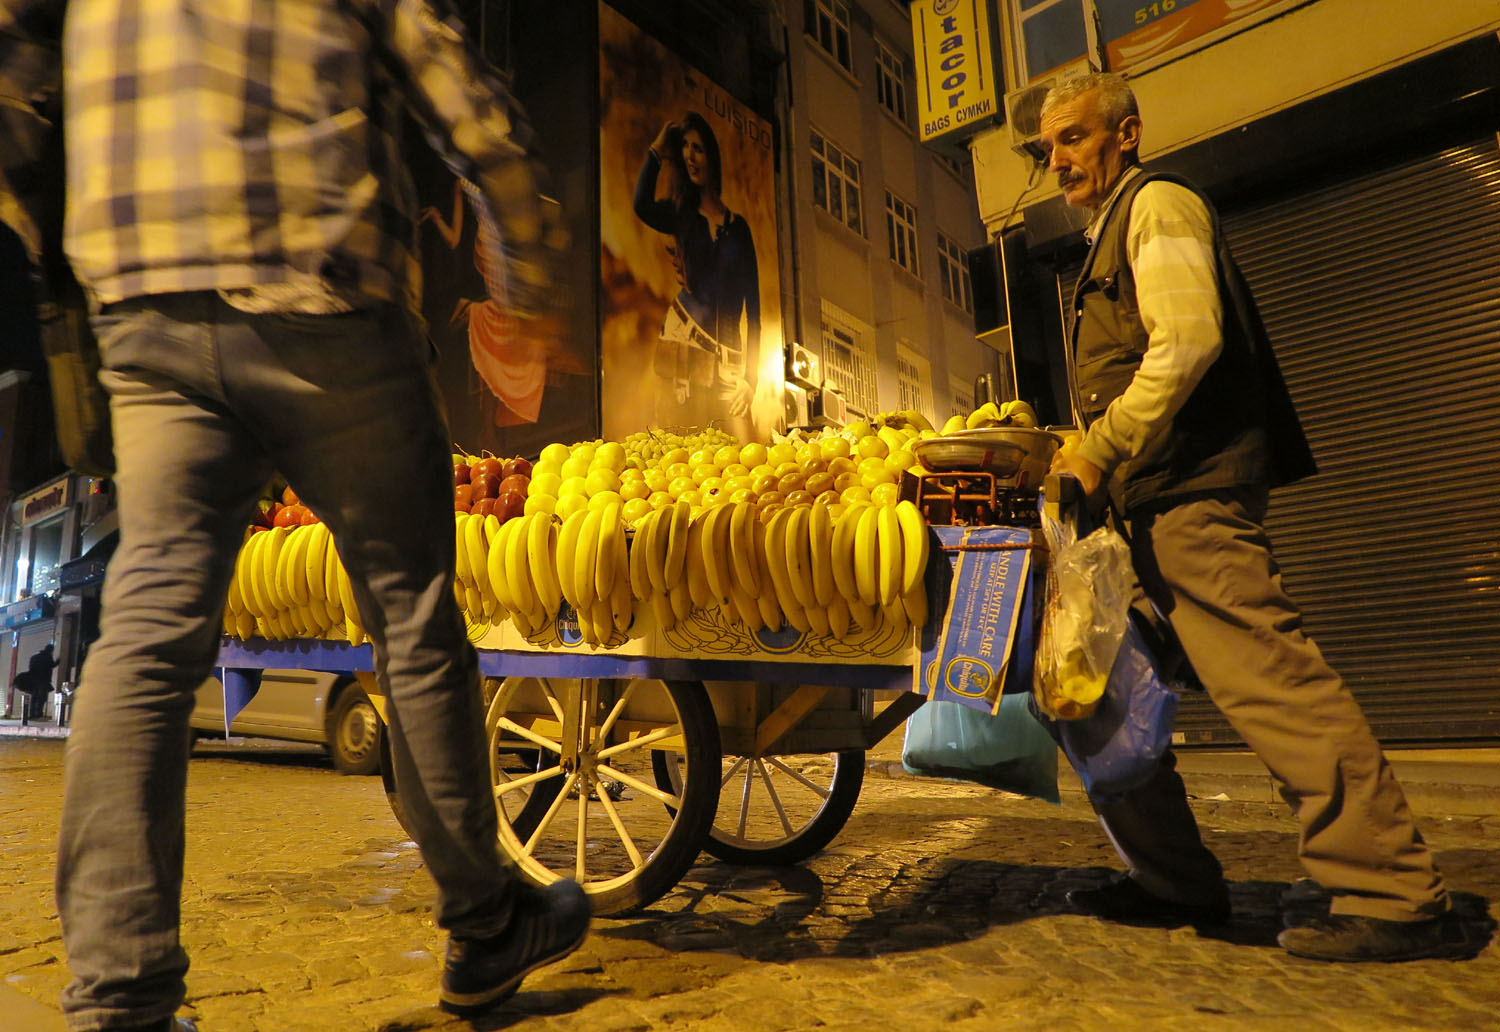 Turkey-Istanbul-Street-Scenes-Fruit-Vendor